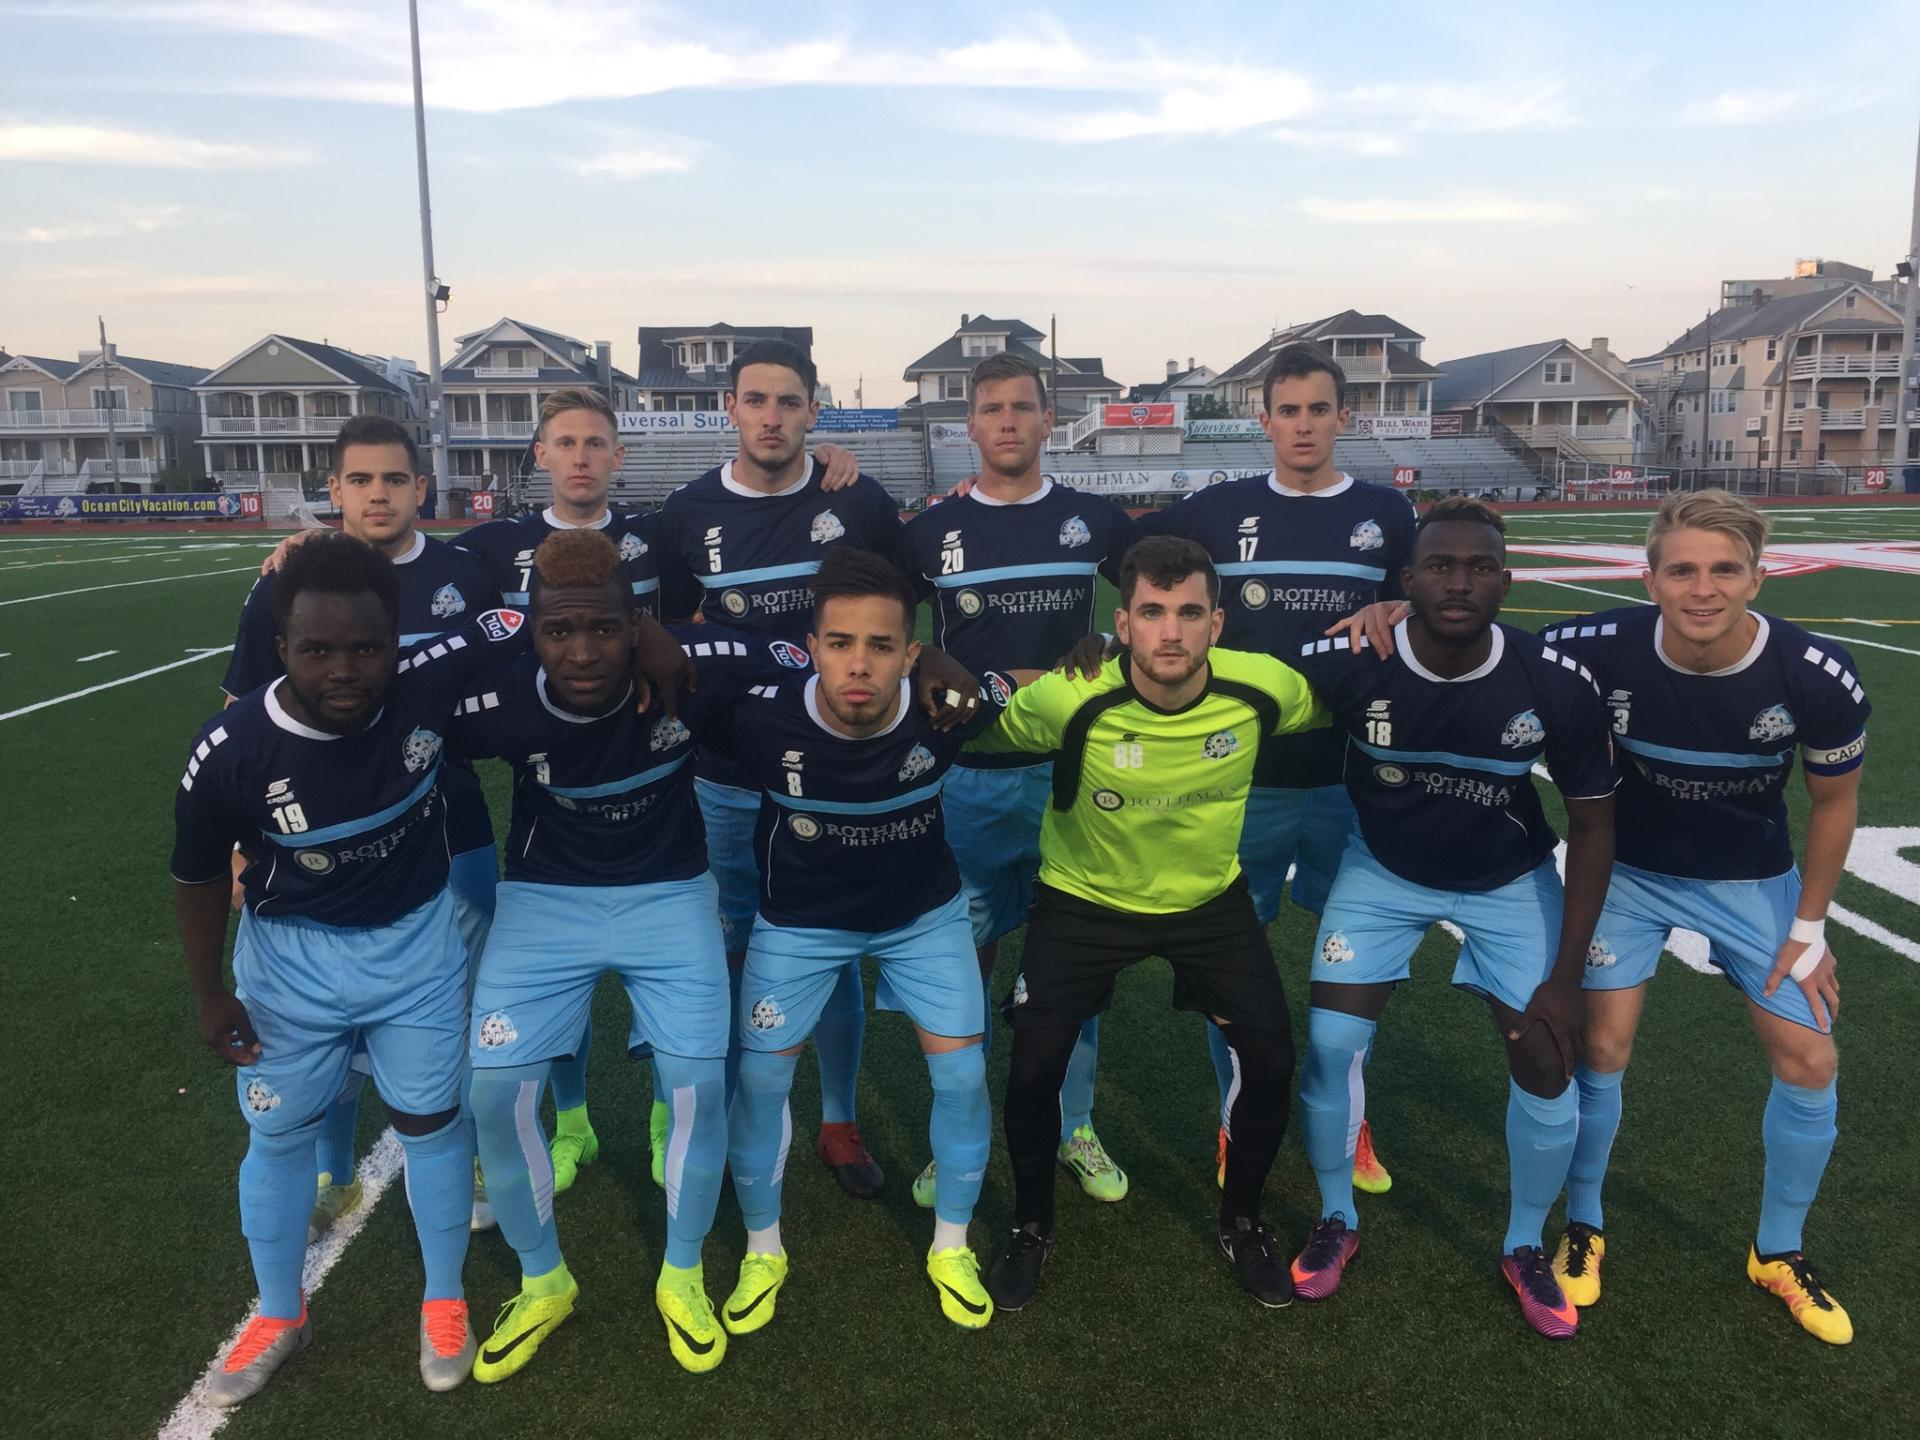 Nor'easters win 2017 US Open Cup opener to earn date with pro team in Round 2